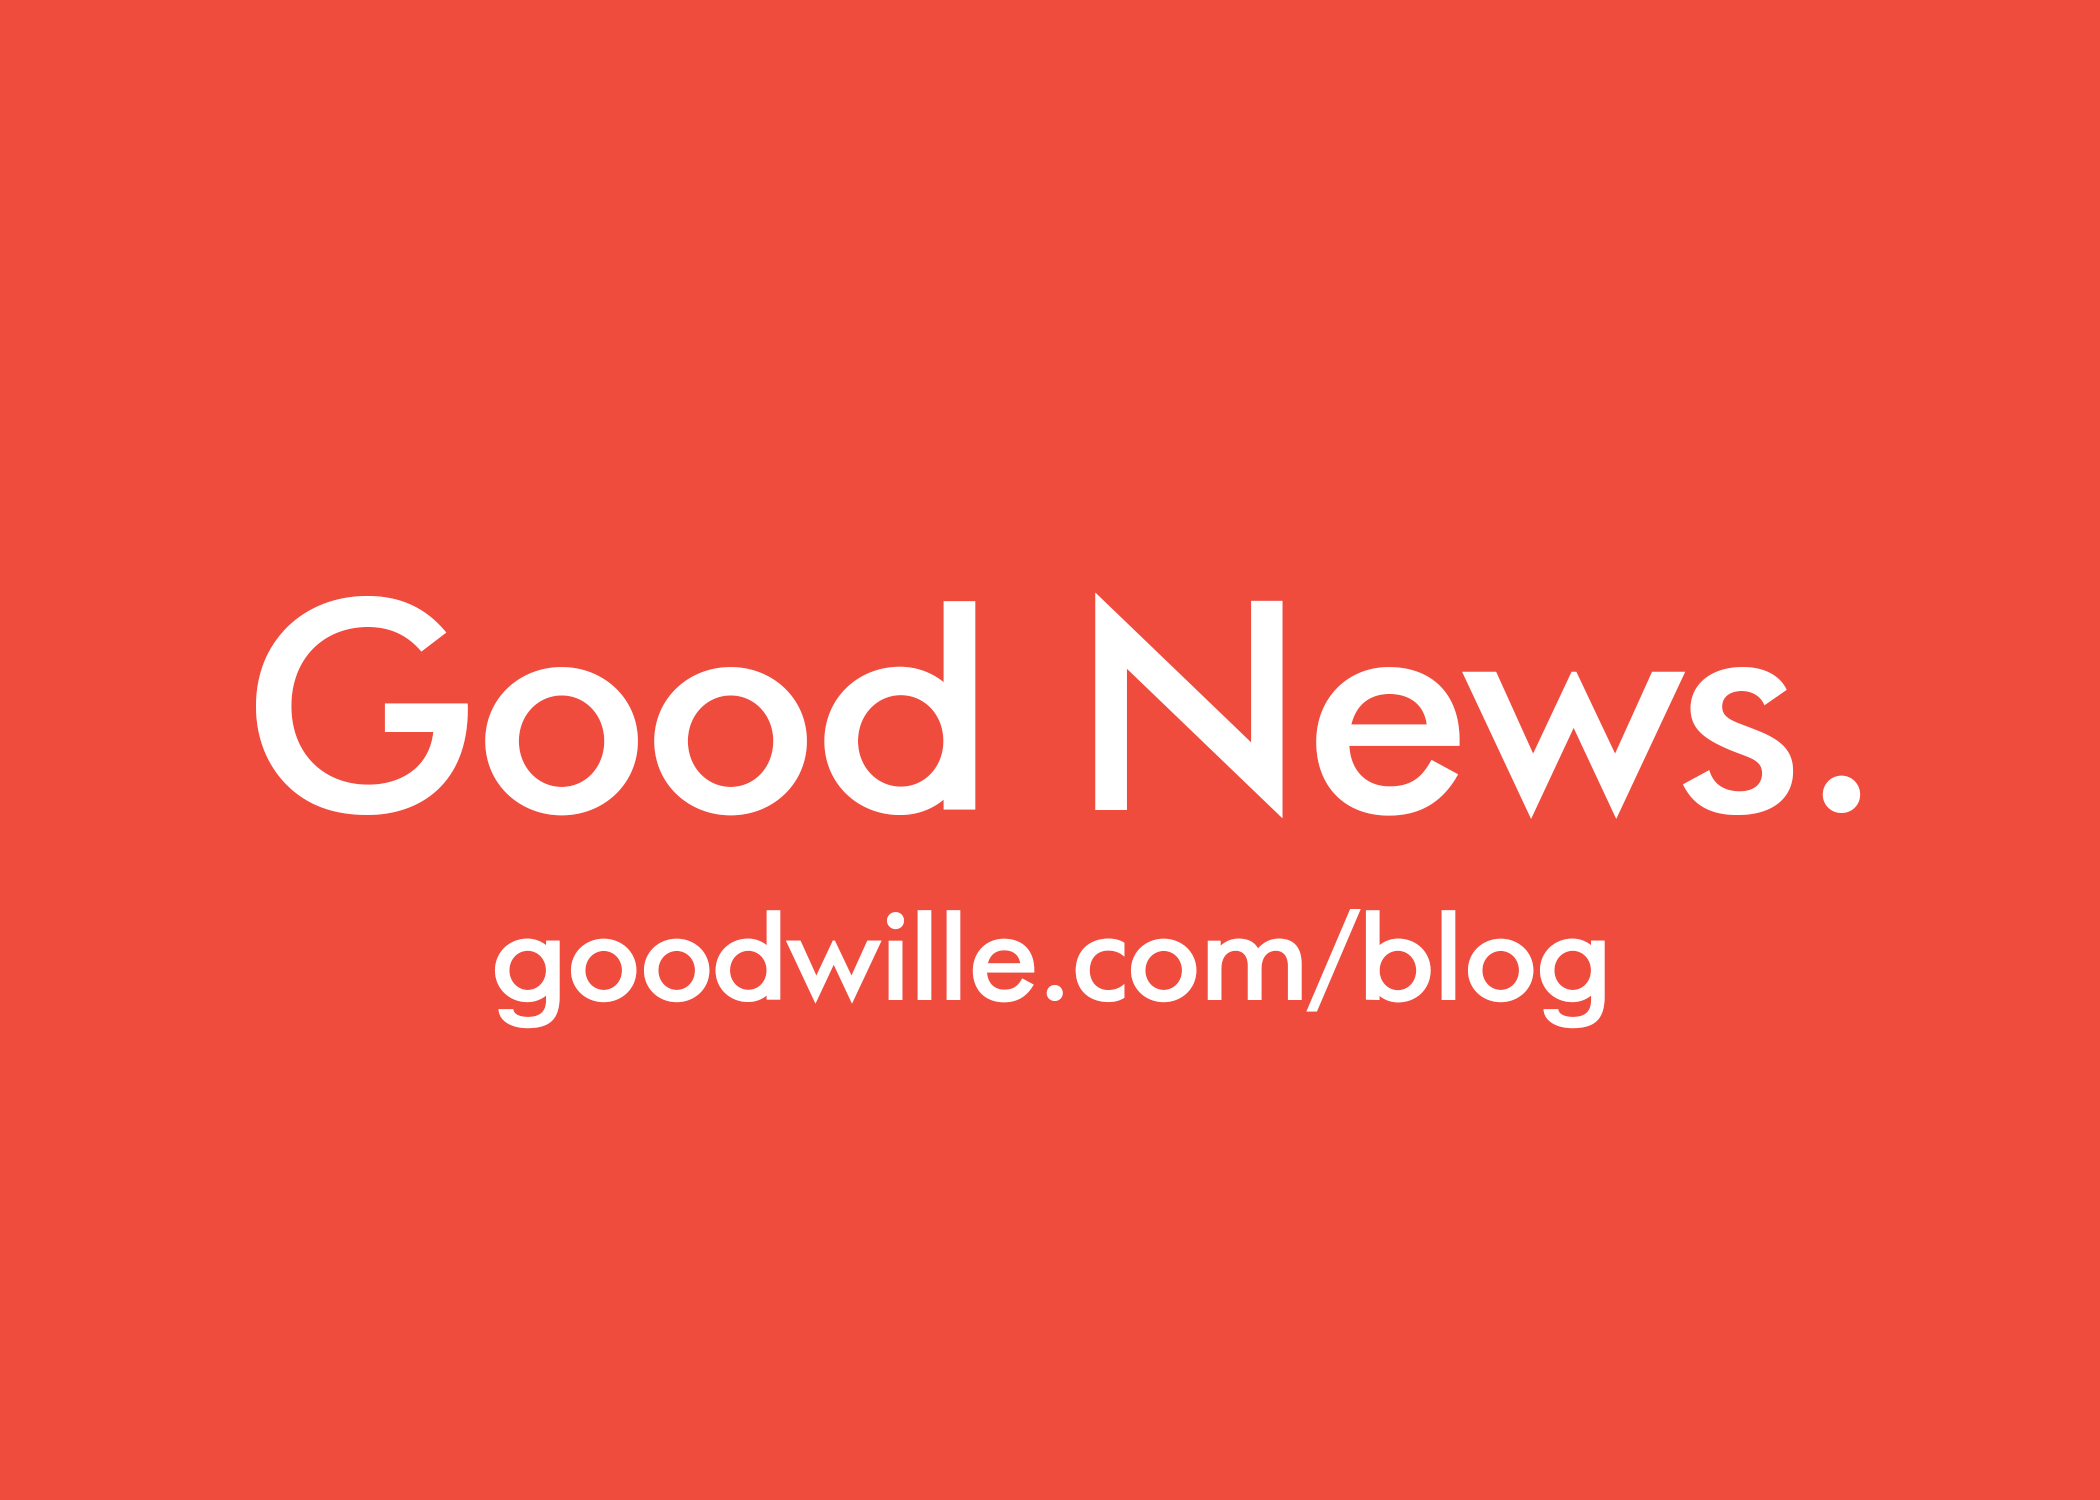 Good News goodwille blog